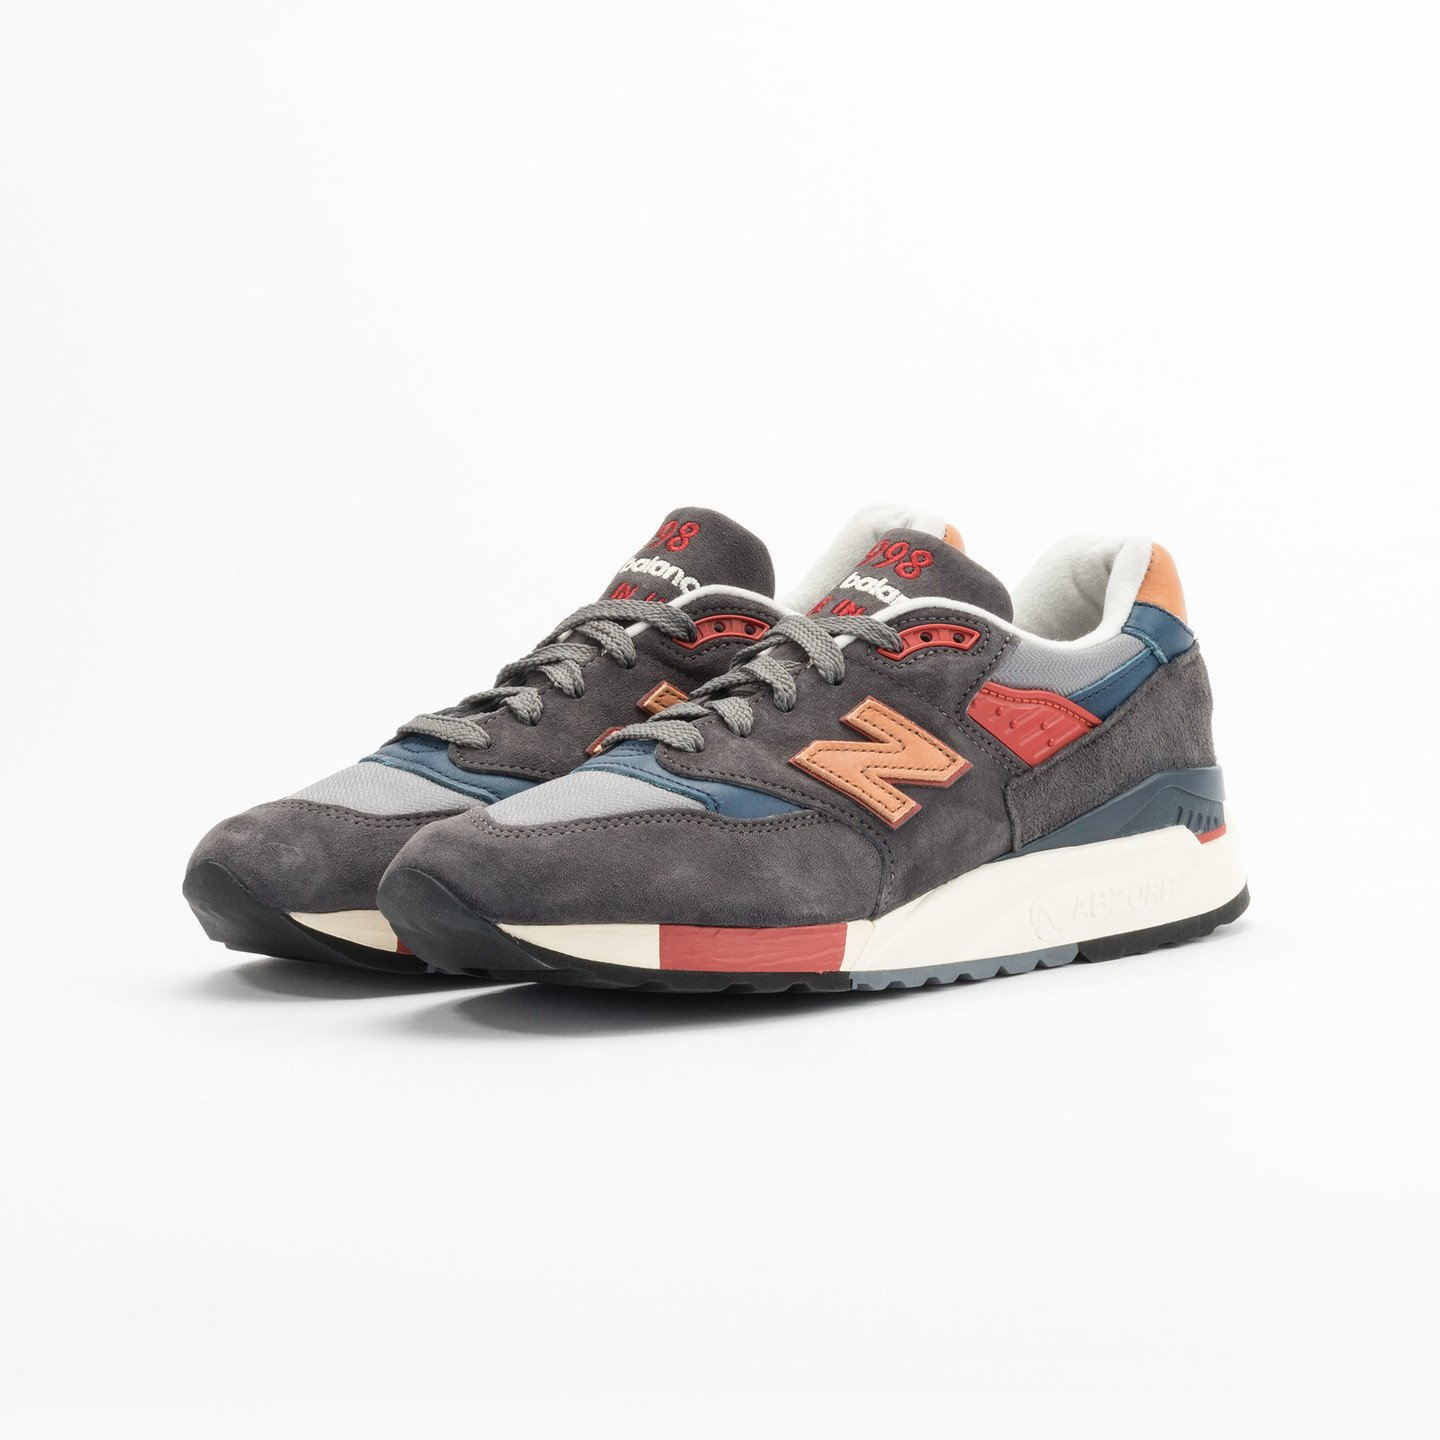 New Balance M998 Made in USA Dark Grey / Beige / Red / Navy M998DBR-41.5